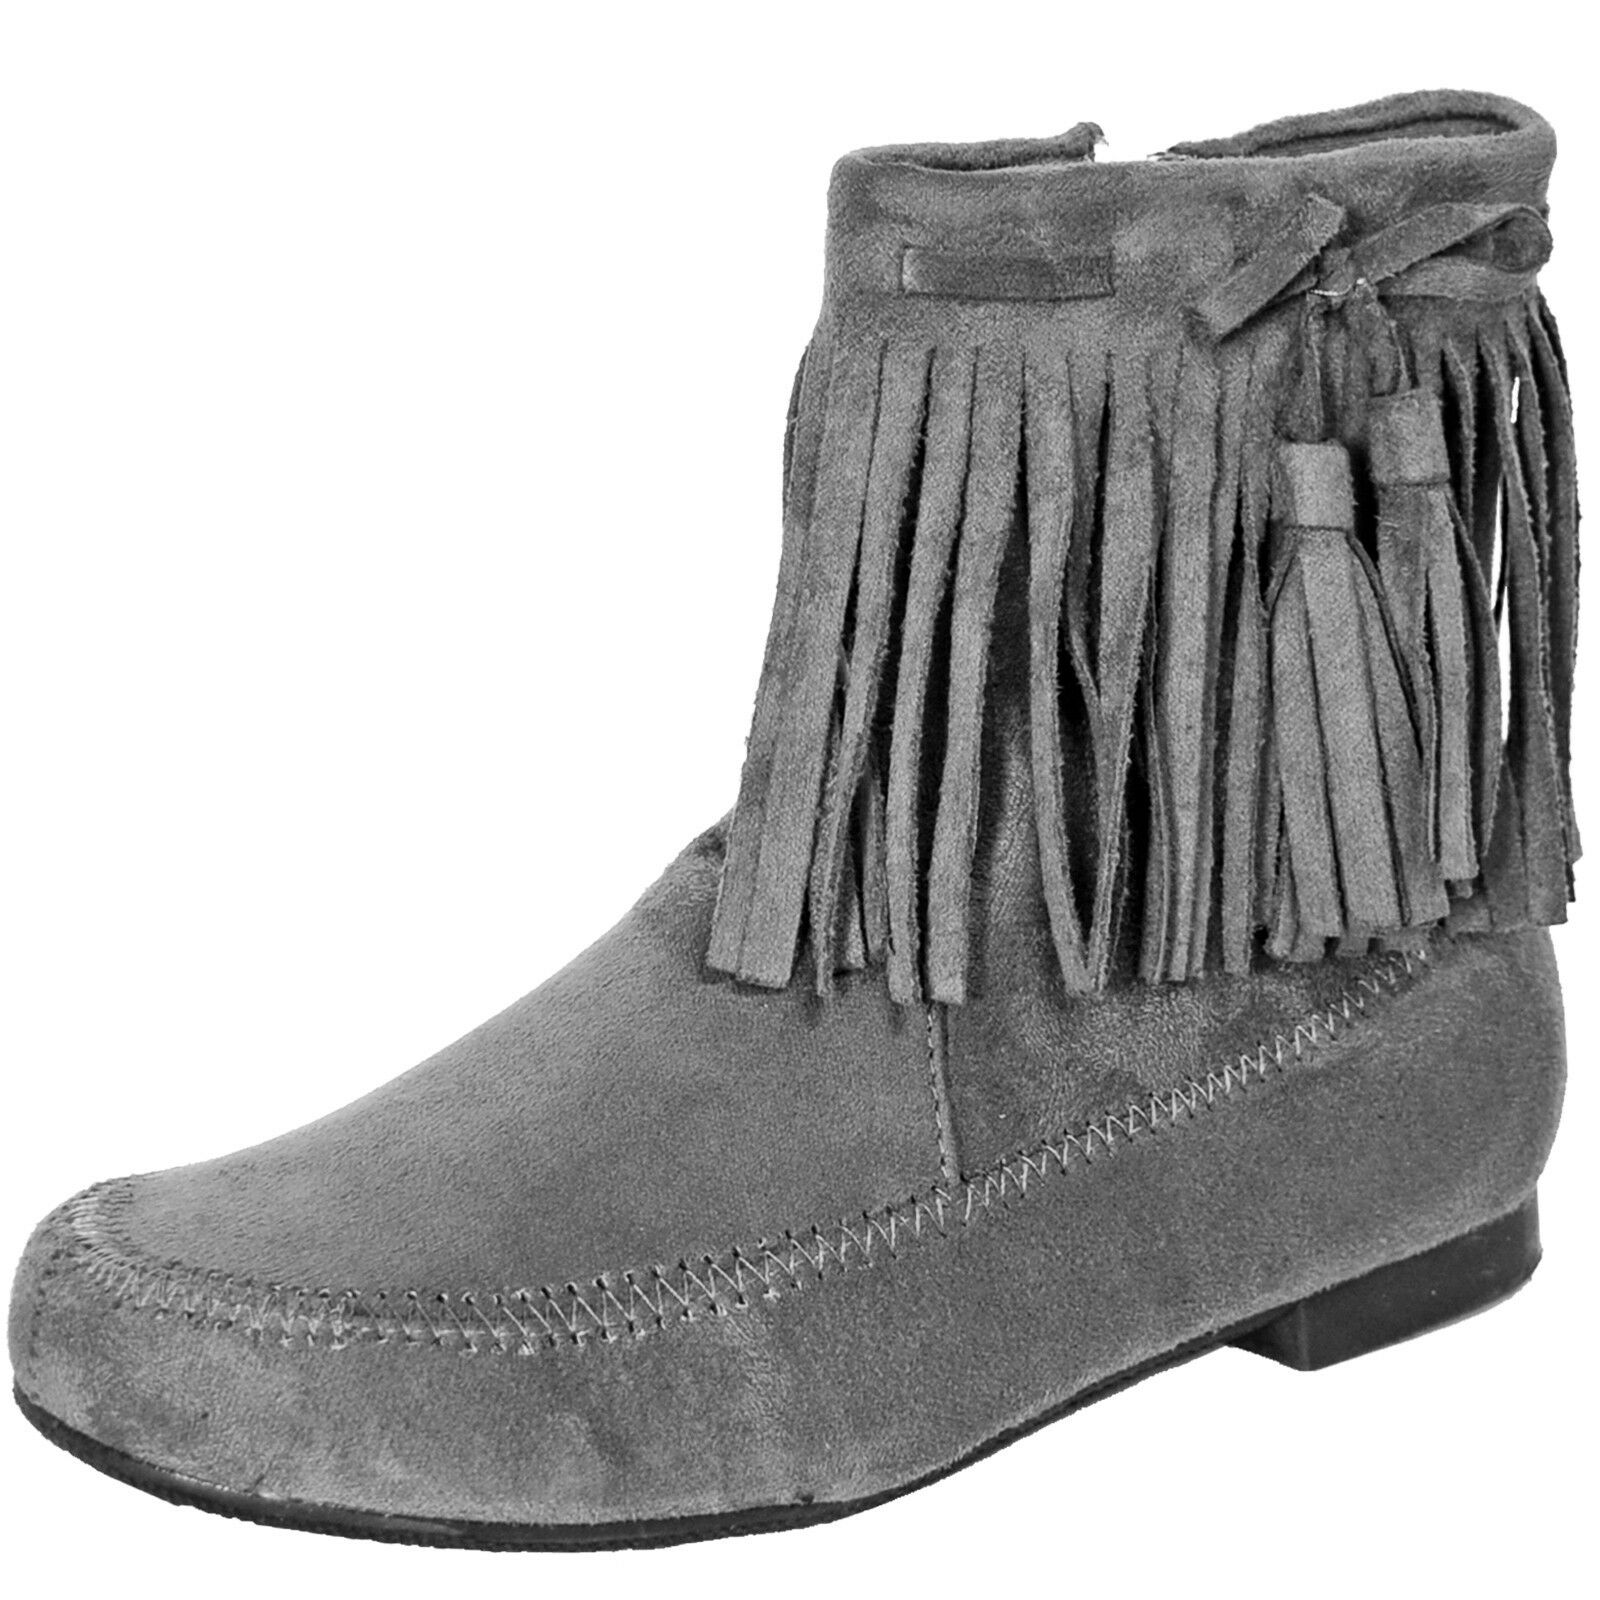 New women's shoes ankle boots fashion suede like side zipper fringe detail gray